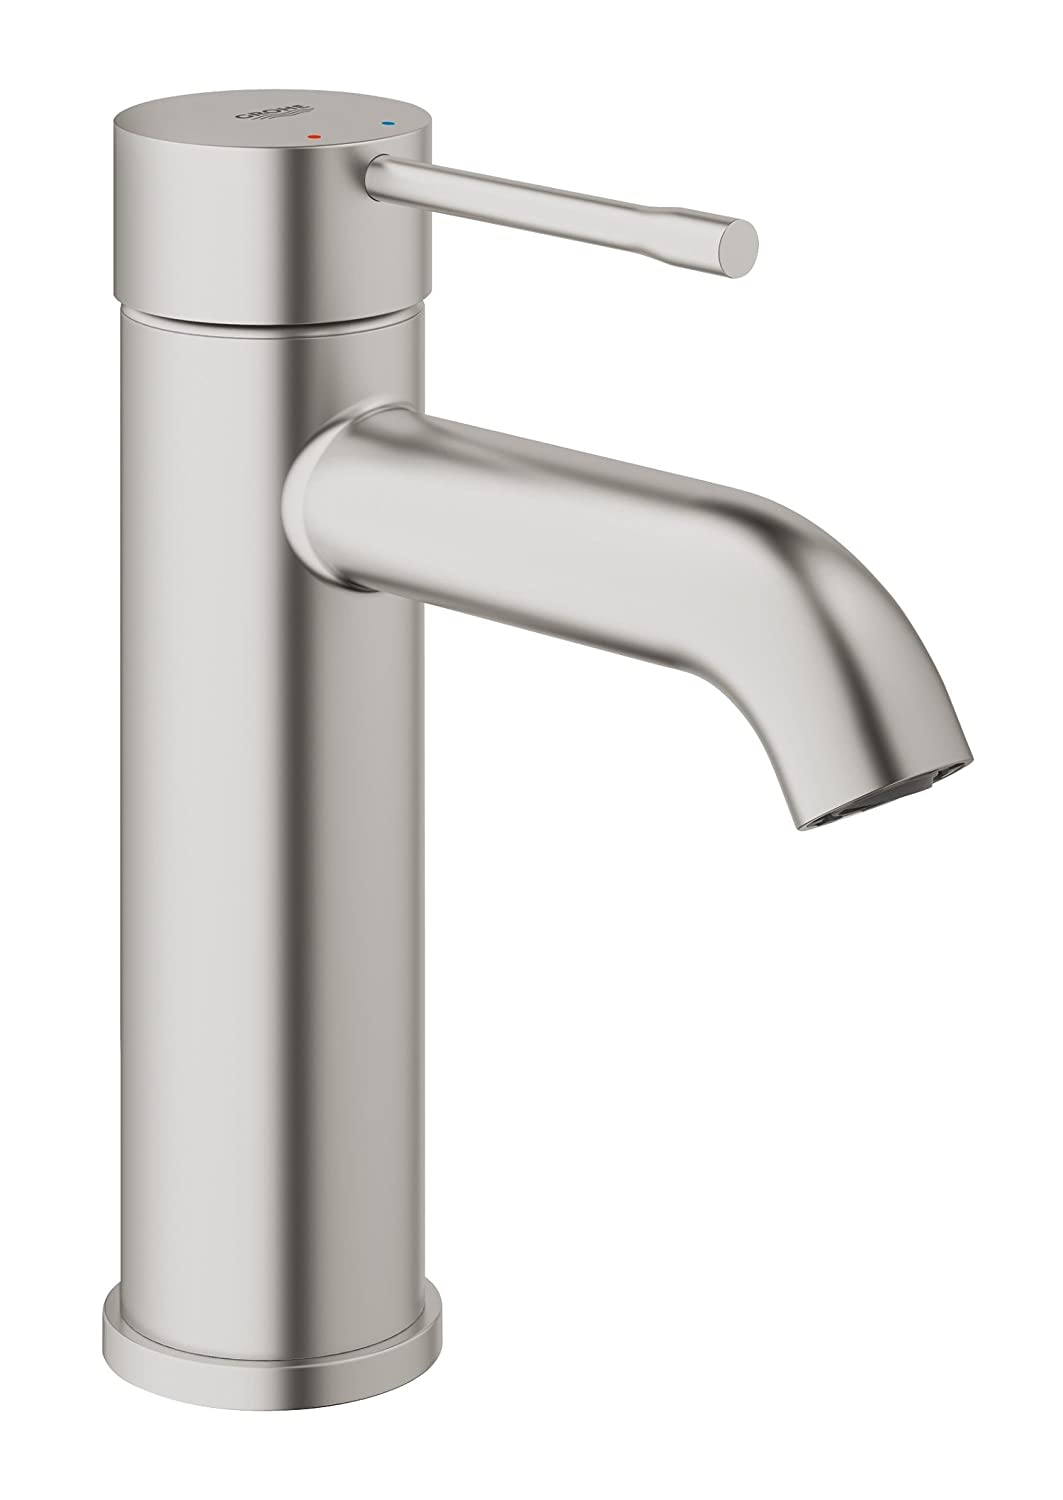 Grohe Essence - Grifo de lavabo Cuerpo liso color Supersteel S (supersteel) Ref. 23590DC1